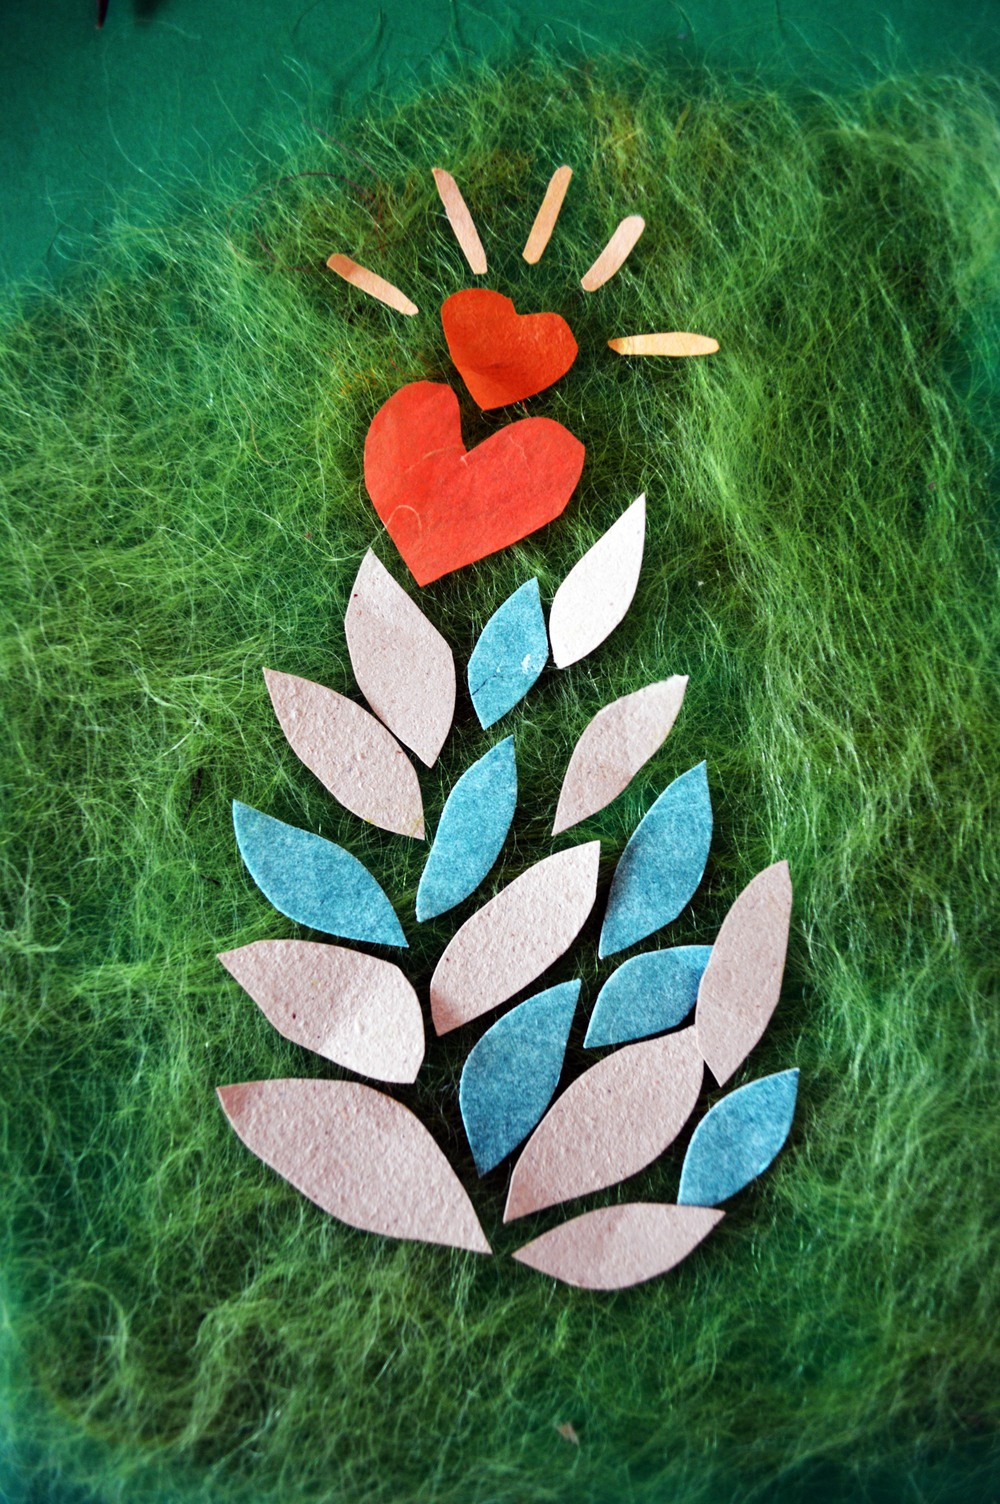 Natalya Garden-Thompson,  Creative Vitality                                                                                 Photograph of a collage made from:  light brown  handmade paper & green etchings on paper shaped as leaves; orange paper   love hearts with yellow  radiating lines on top. All laying on top of green silk paper.   © all images by   Natalya Garden-Thompson, 2016